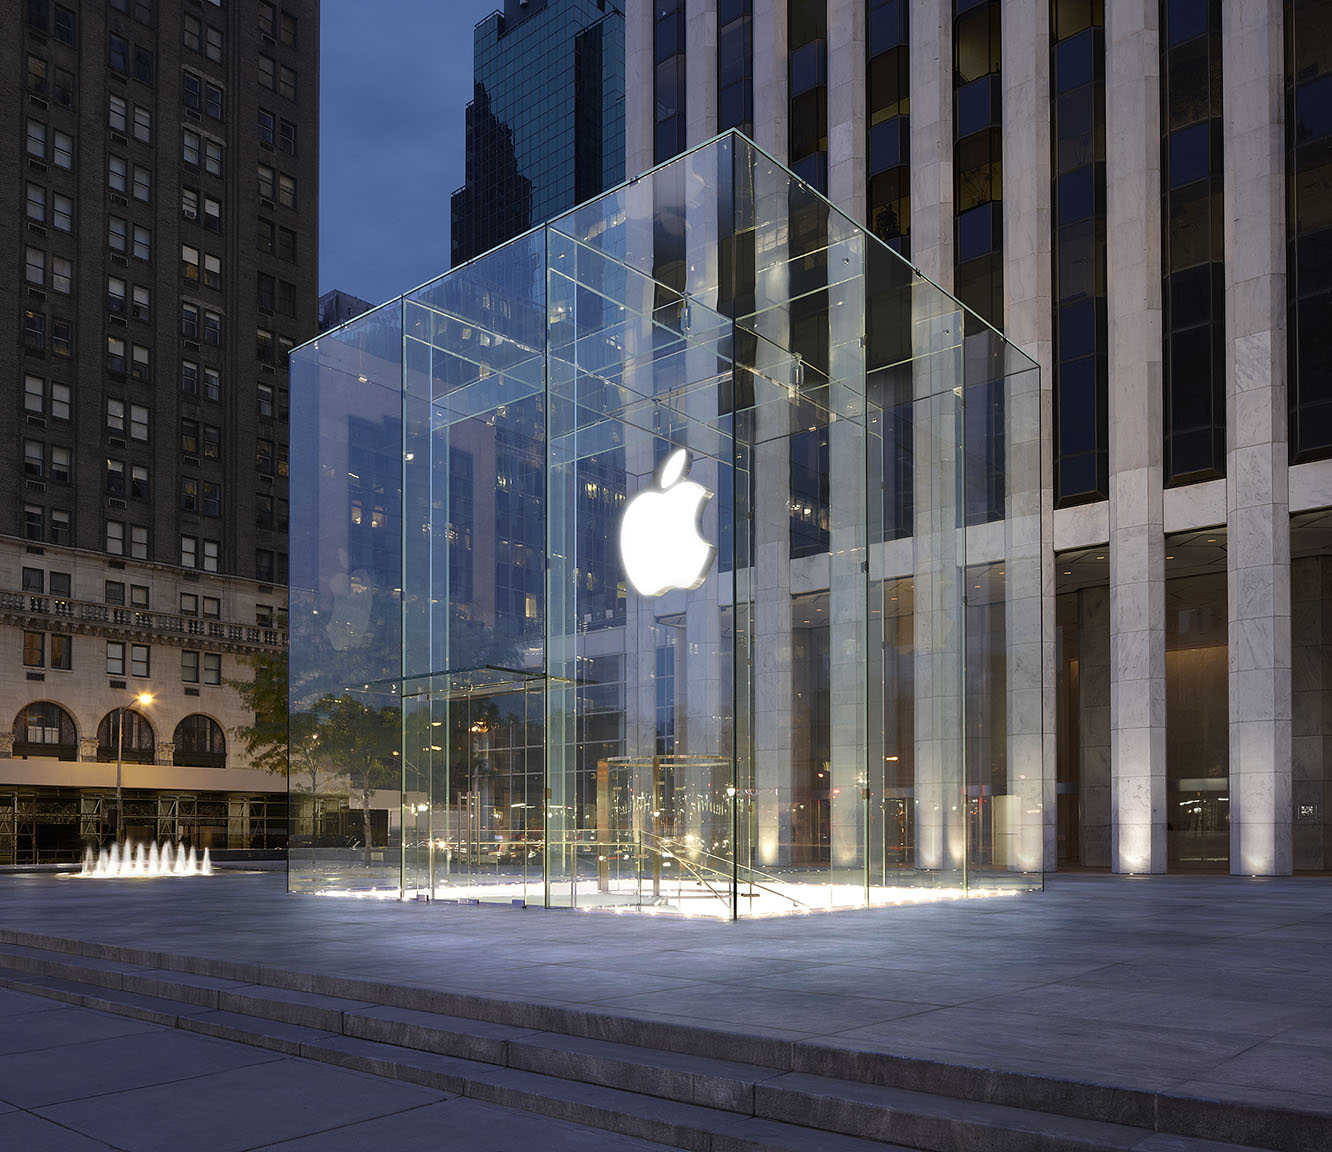 Apple may be adding Beats 1 DJ booth to Fifth Avenue store 1